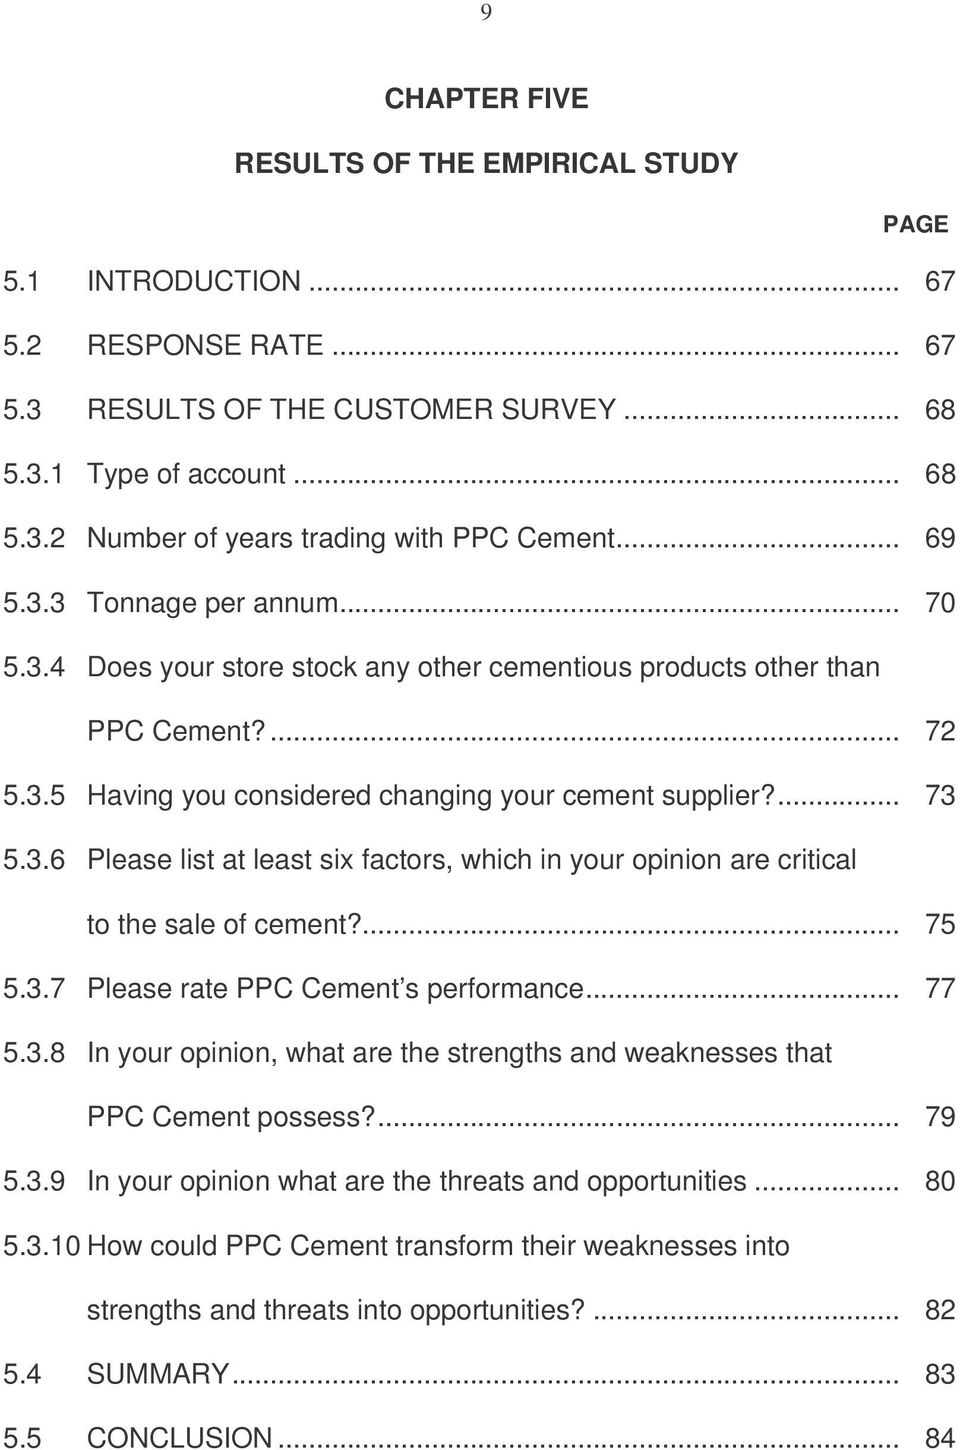 ... 75 5.3.7 Please rate PPC Cement s performance... 77 5.3.8 In your opinion, what are the strengths and weaknesses that PPC Cement possess?... 79 5.3.9 In your opinion what are the threats and opportunities.